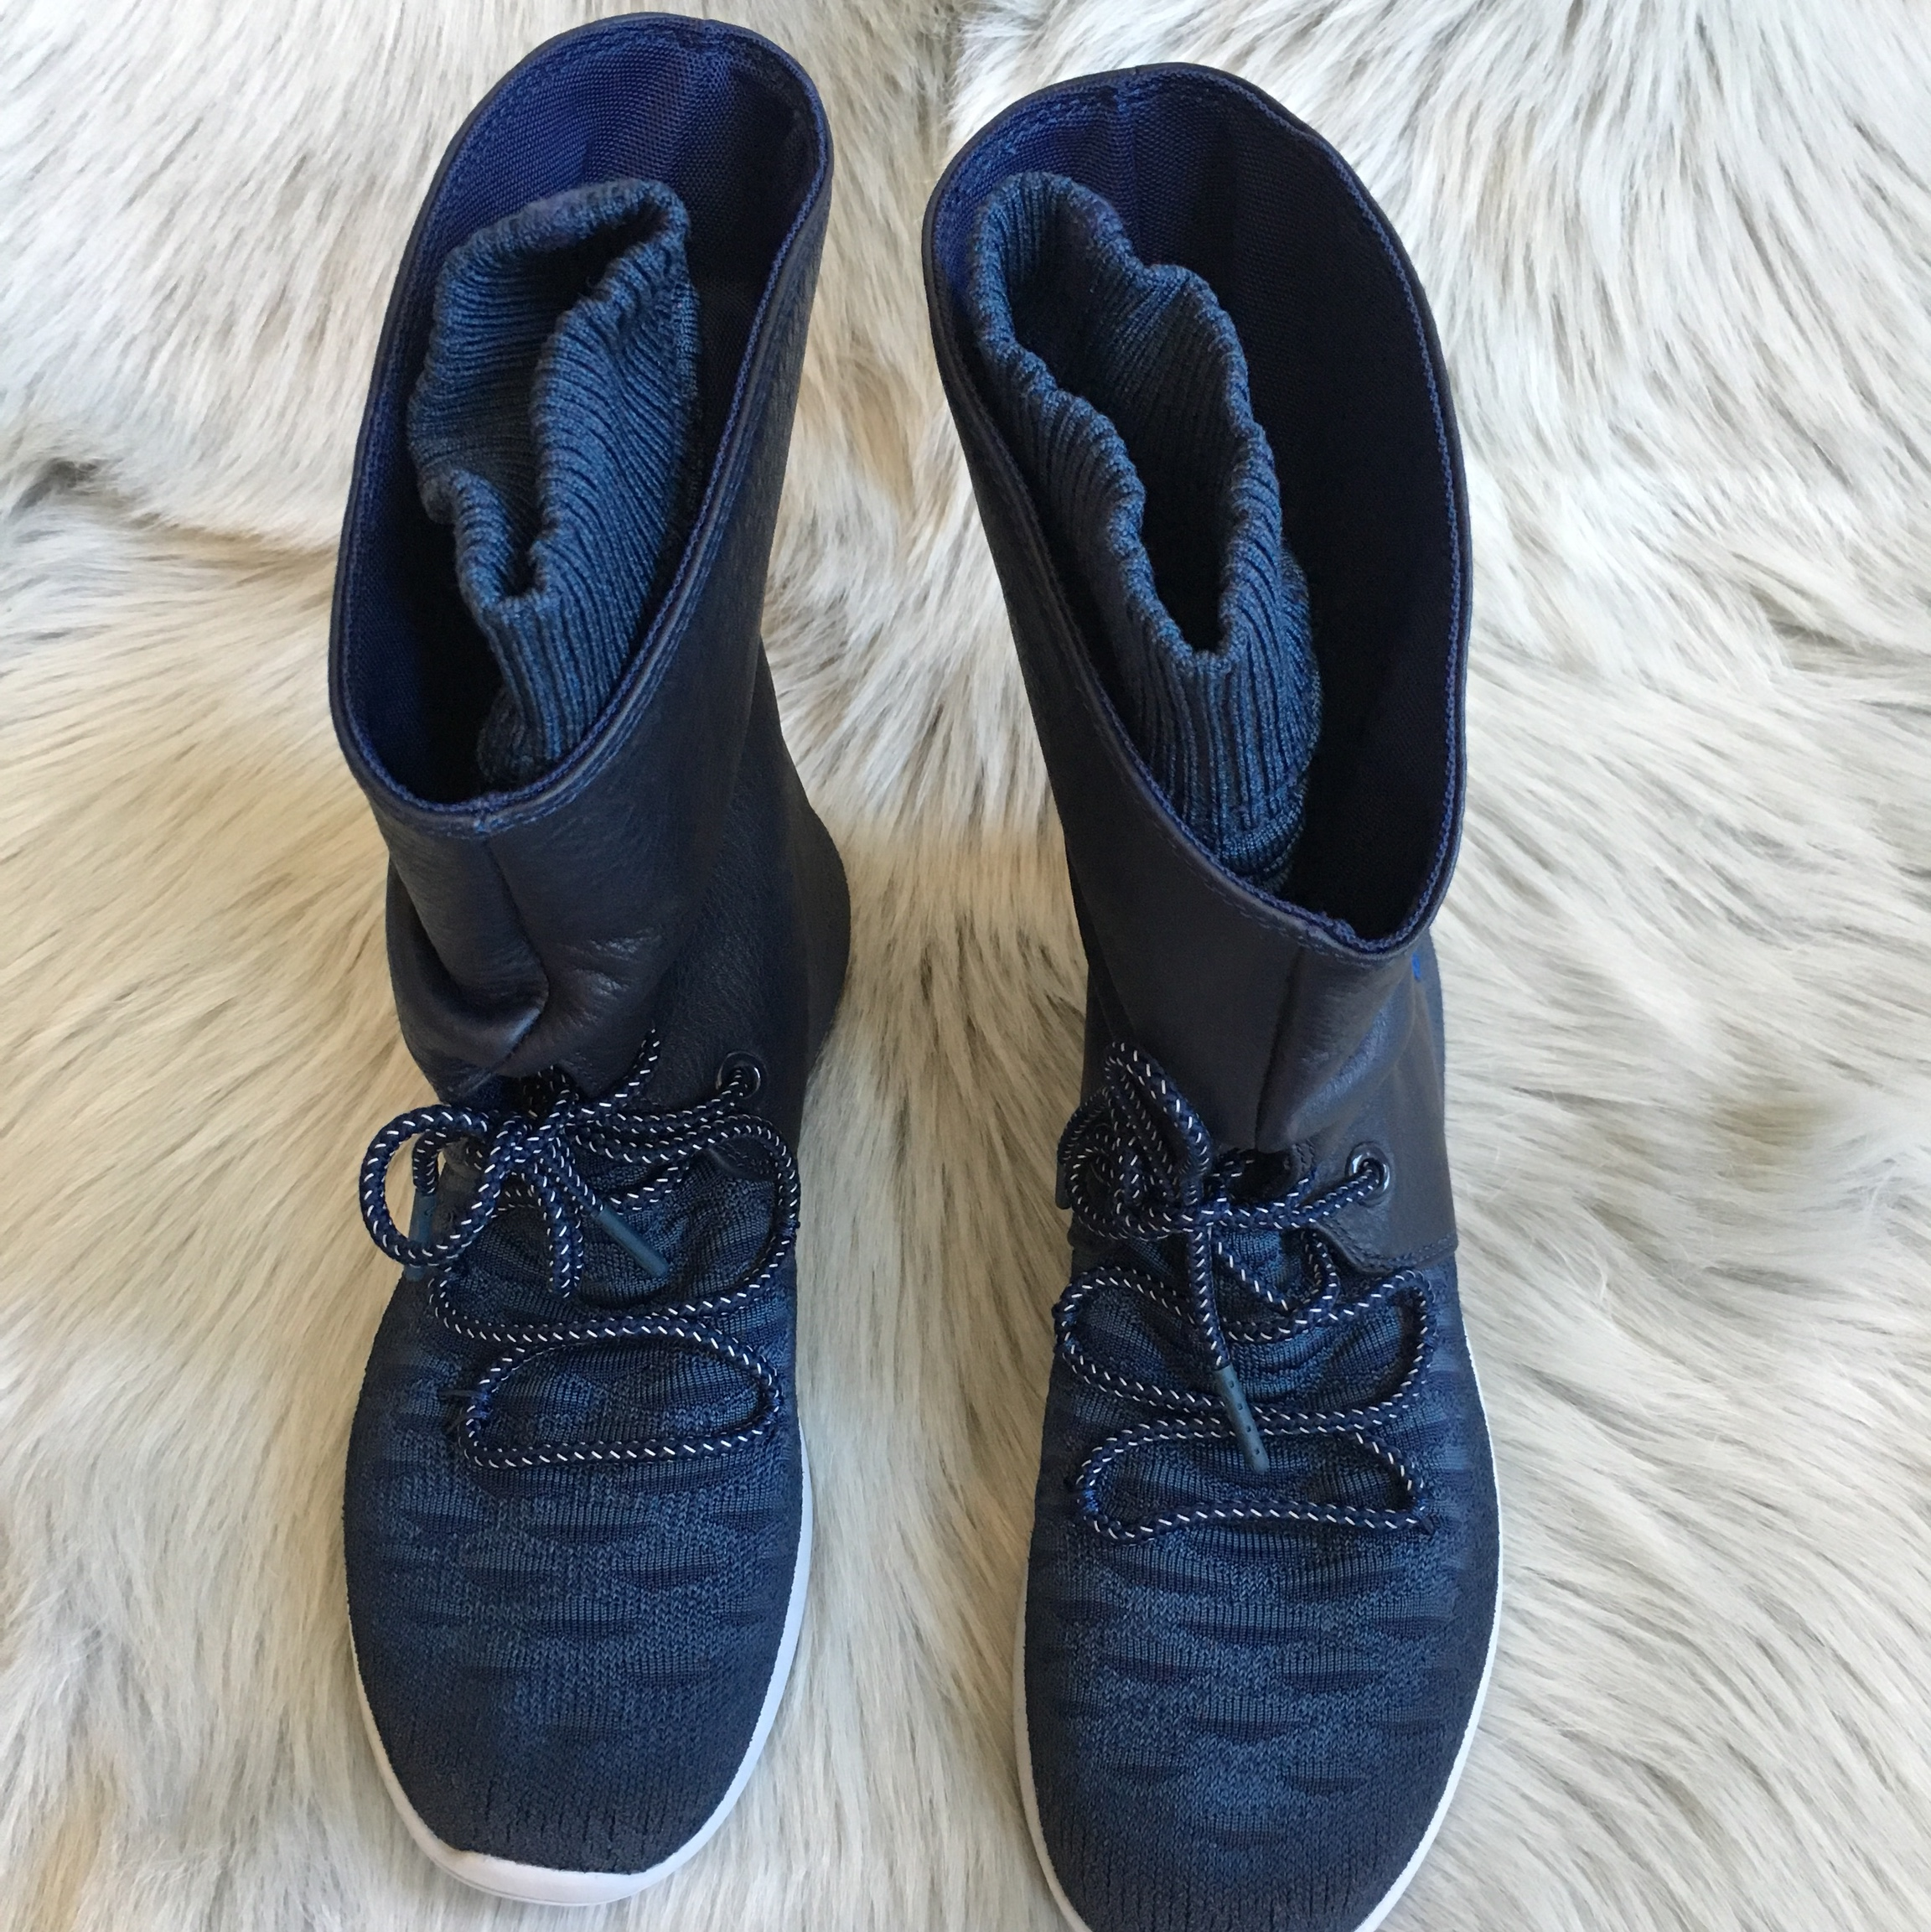 official photos 80996 77048 Nike Roshe Two Hi Flyknit Sneakerboots ✨Brand New... - Depop